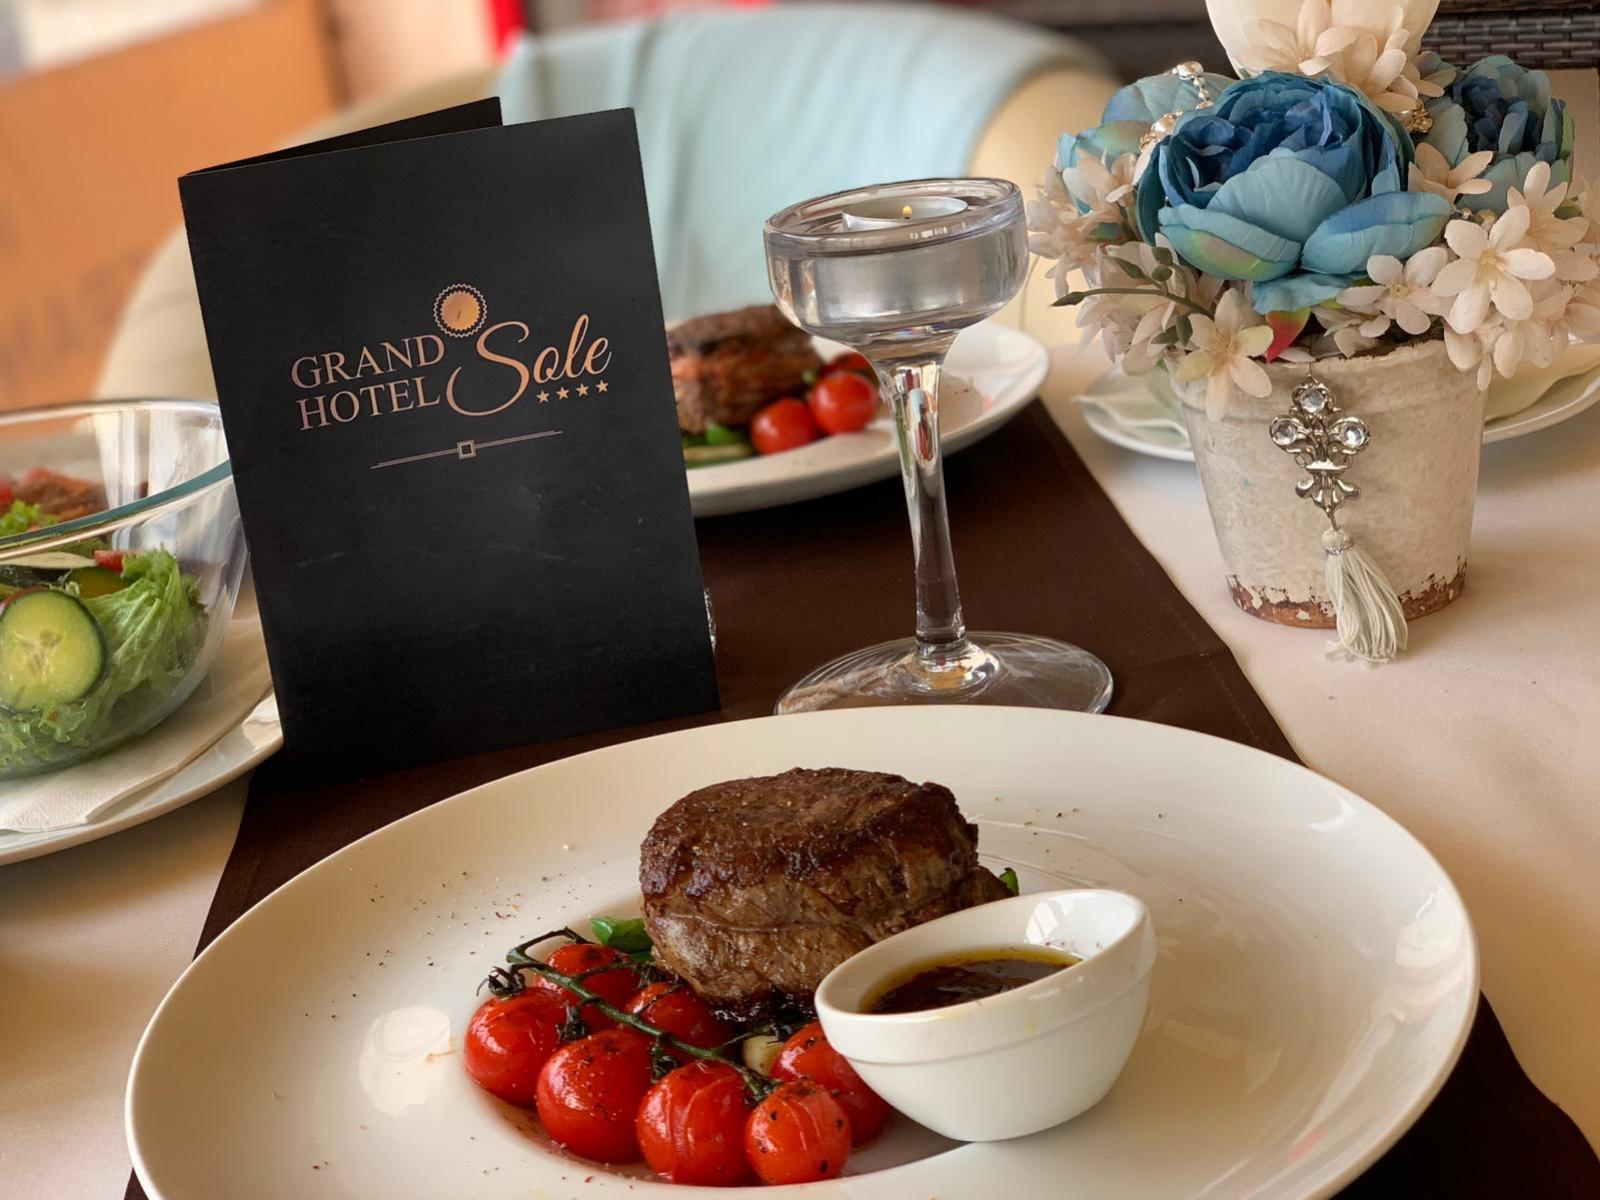 Grand Hotel Sole**** - Hovädzí steak